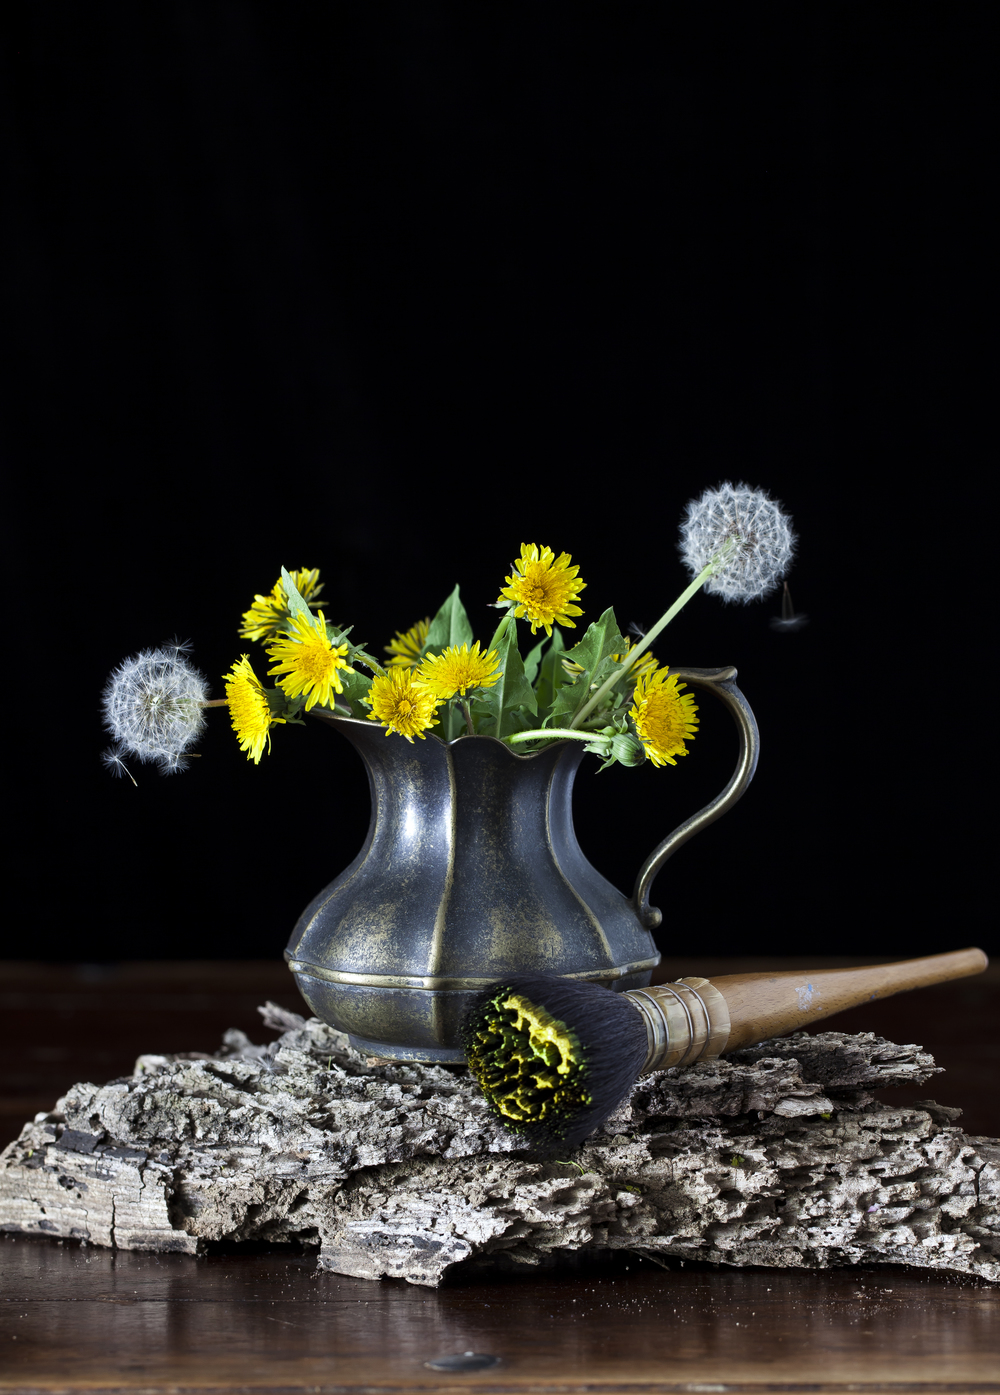 Still Life with Dandelions 2015